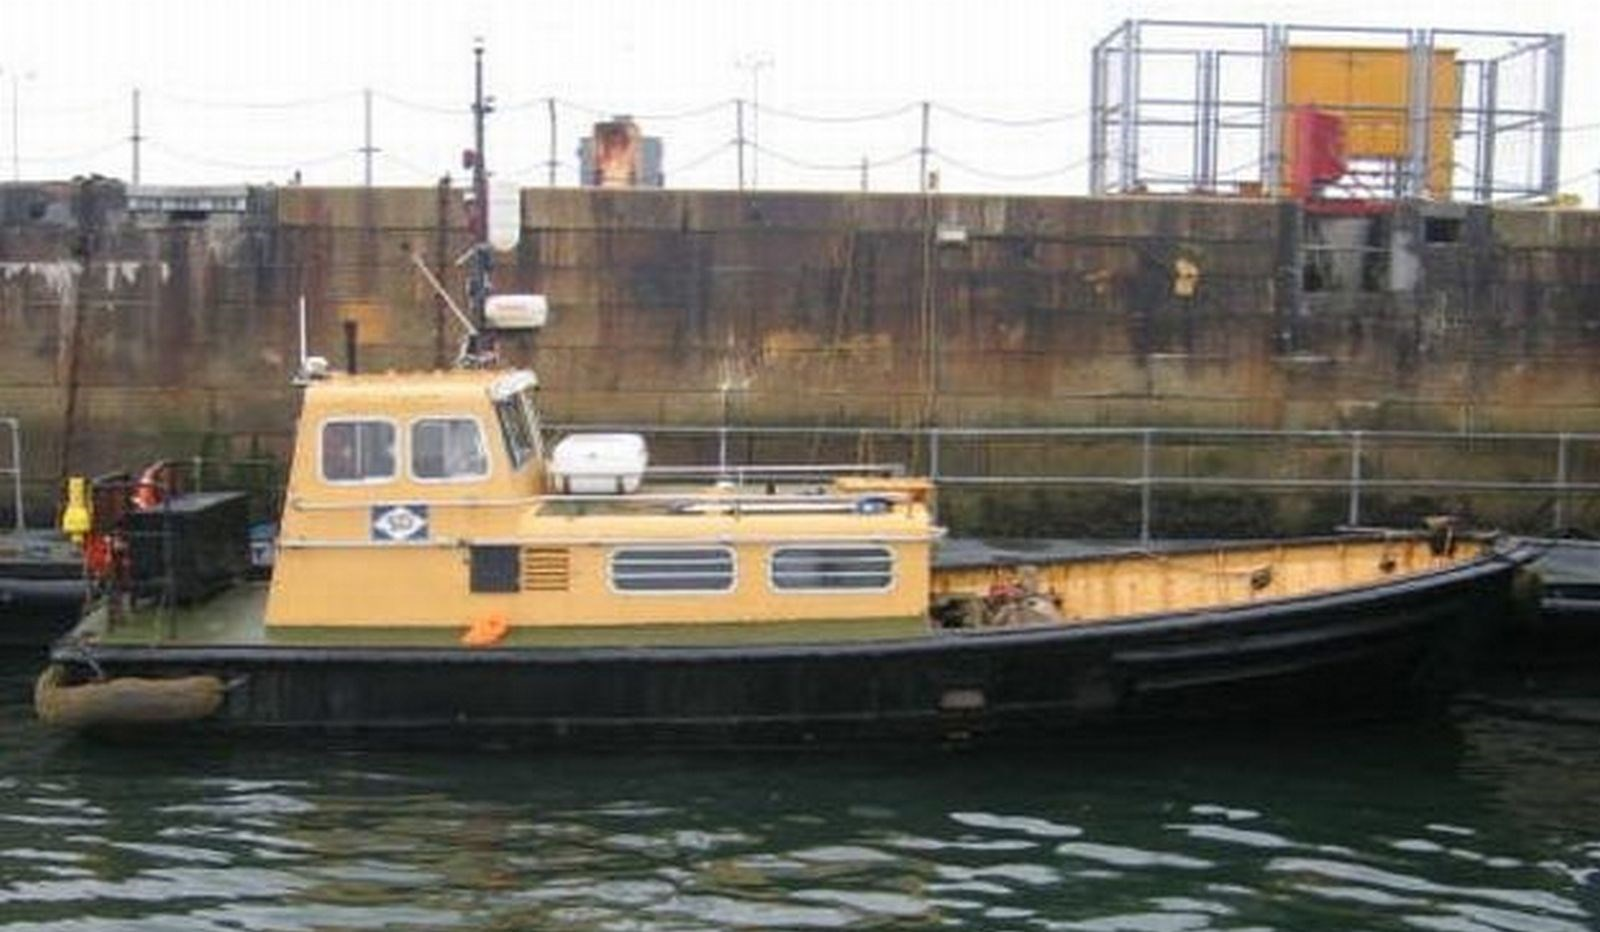 "The Voith tug 'SD Lesley', crew/workboat 'SD Jackie' and twin screw tugboat 'SD Saluki' where sold from U.K. owner ""Serco"" to West African buyers."